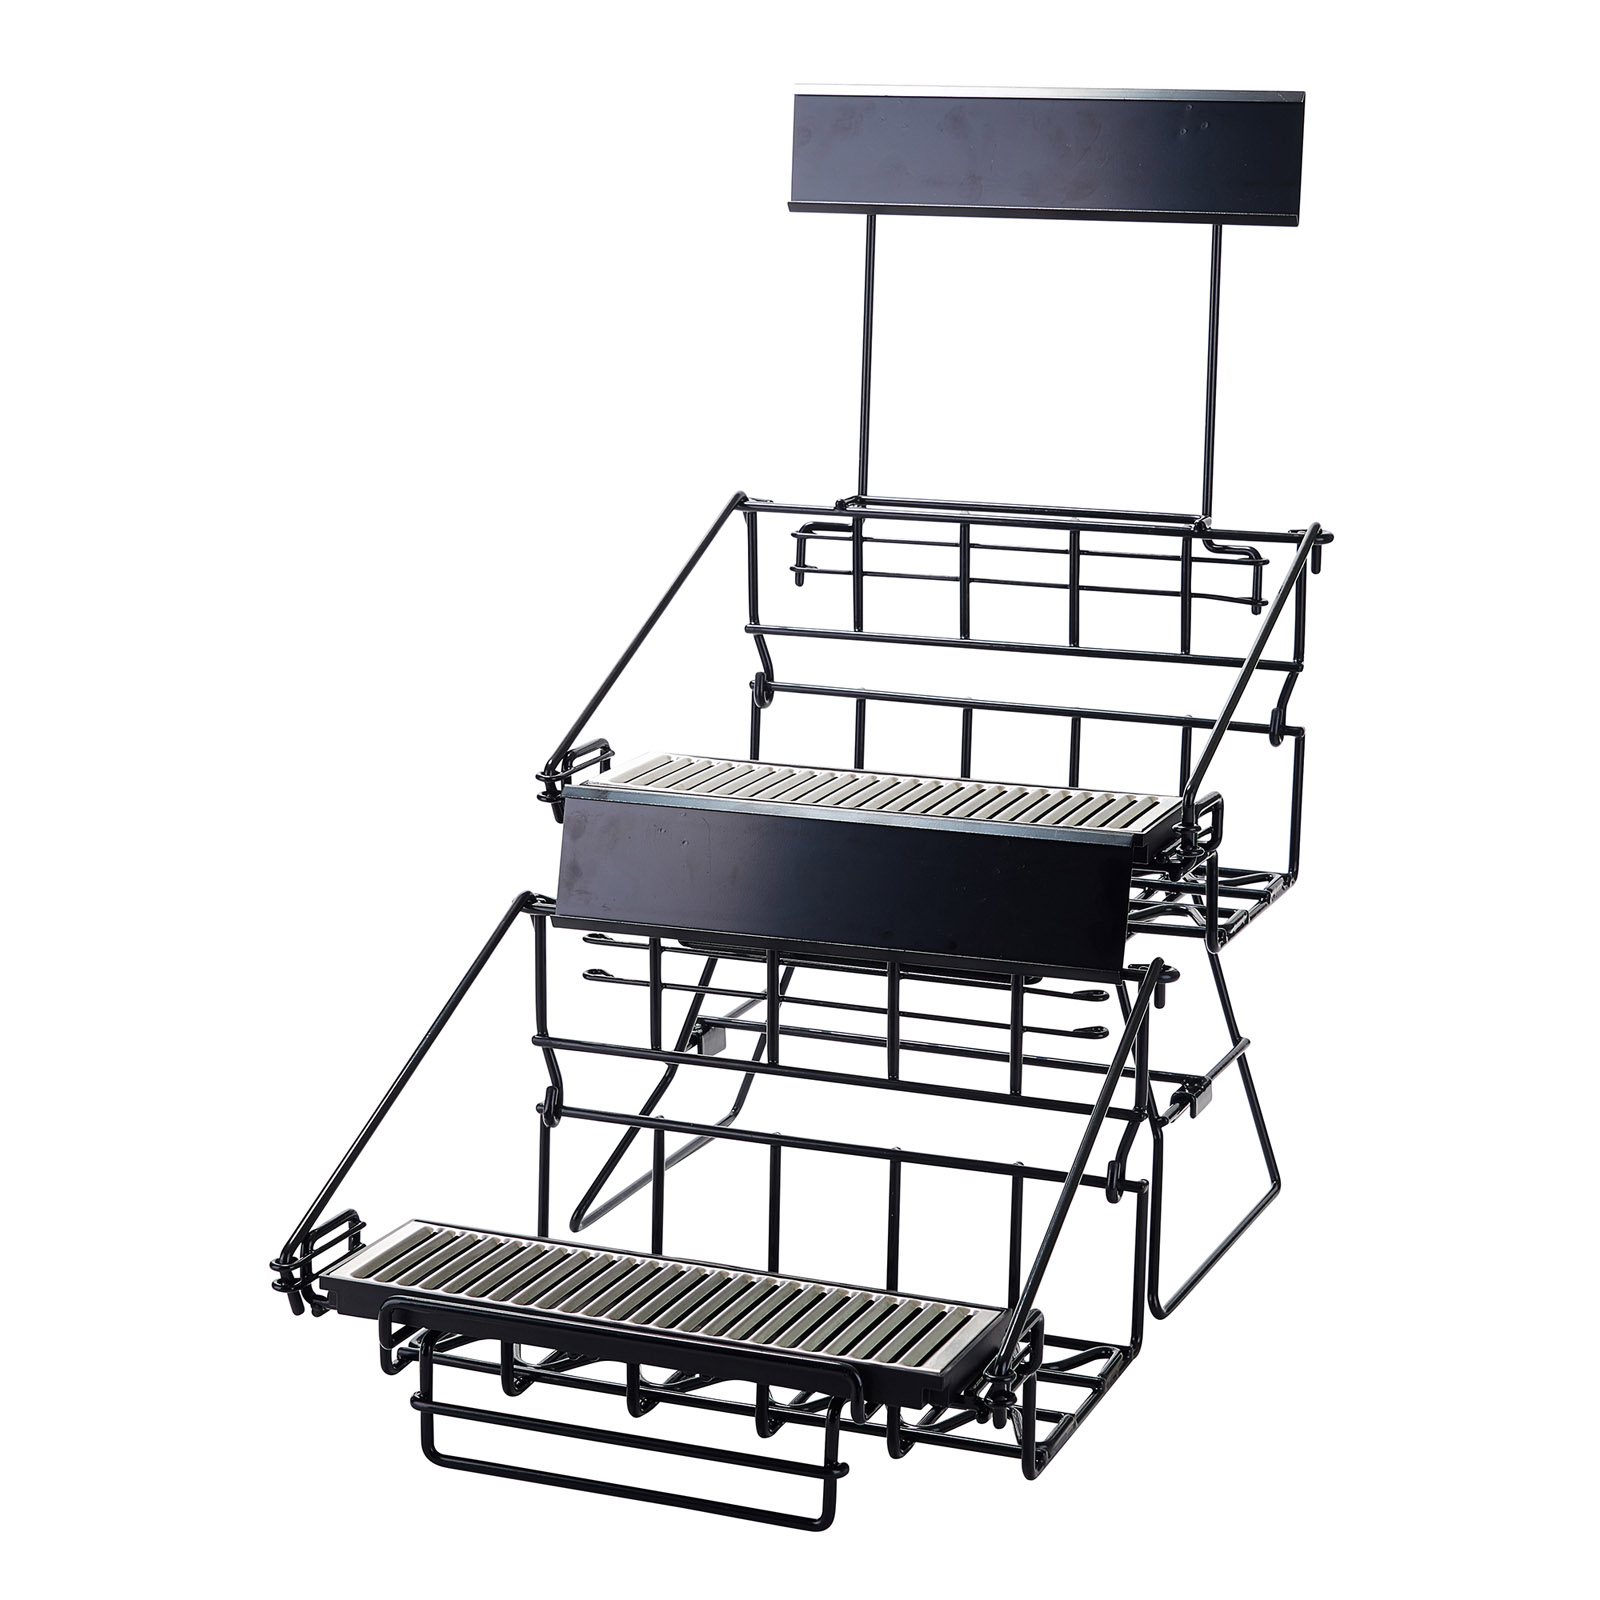 Winco APRK-4 airpot serving rack